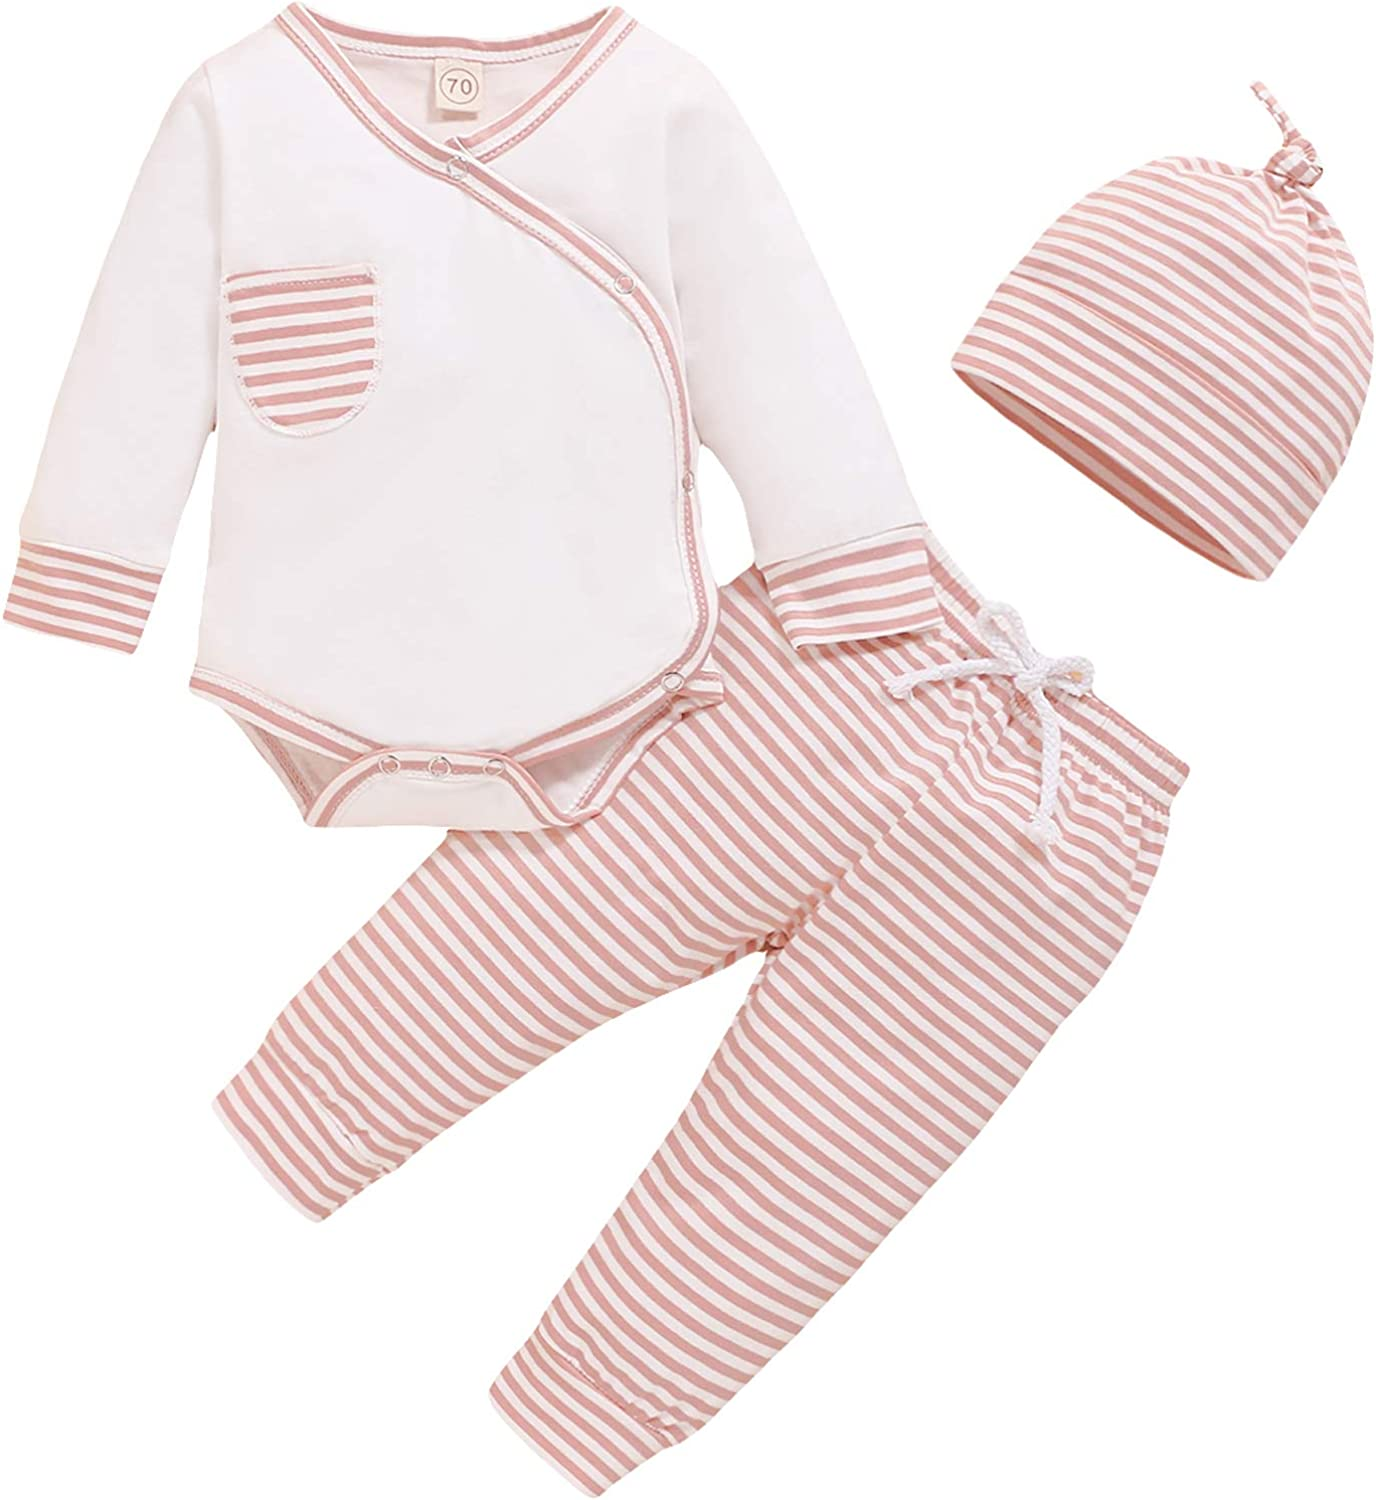 Cocoday Newborn Baby Boy Girl Casual Clothes Long Sleeve Romper Solid Button Bodysuit + Striped Pants Fall Winter Outfit